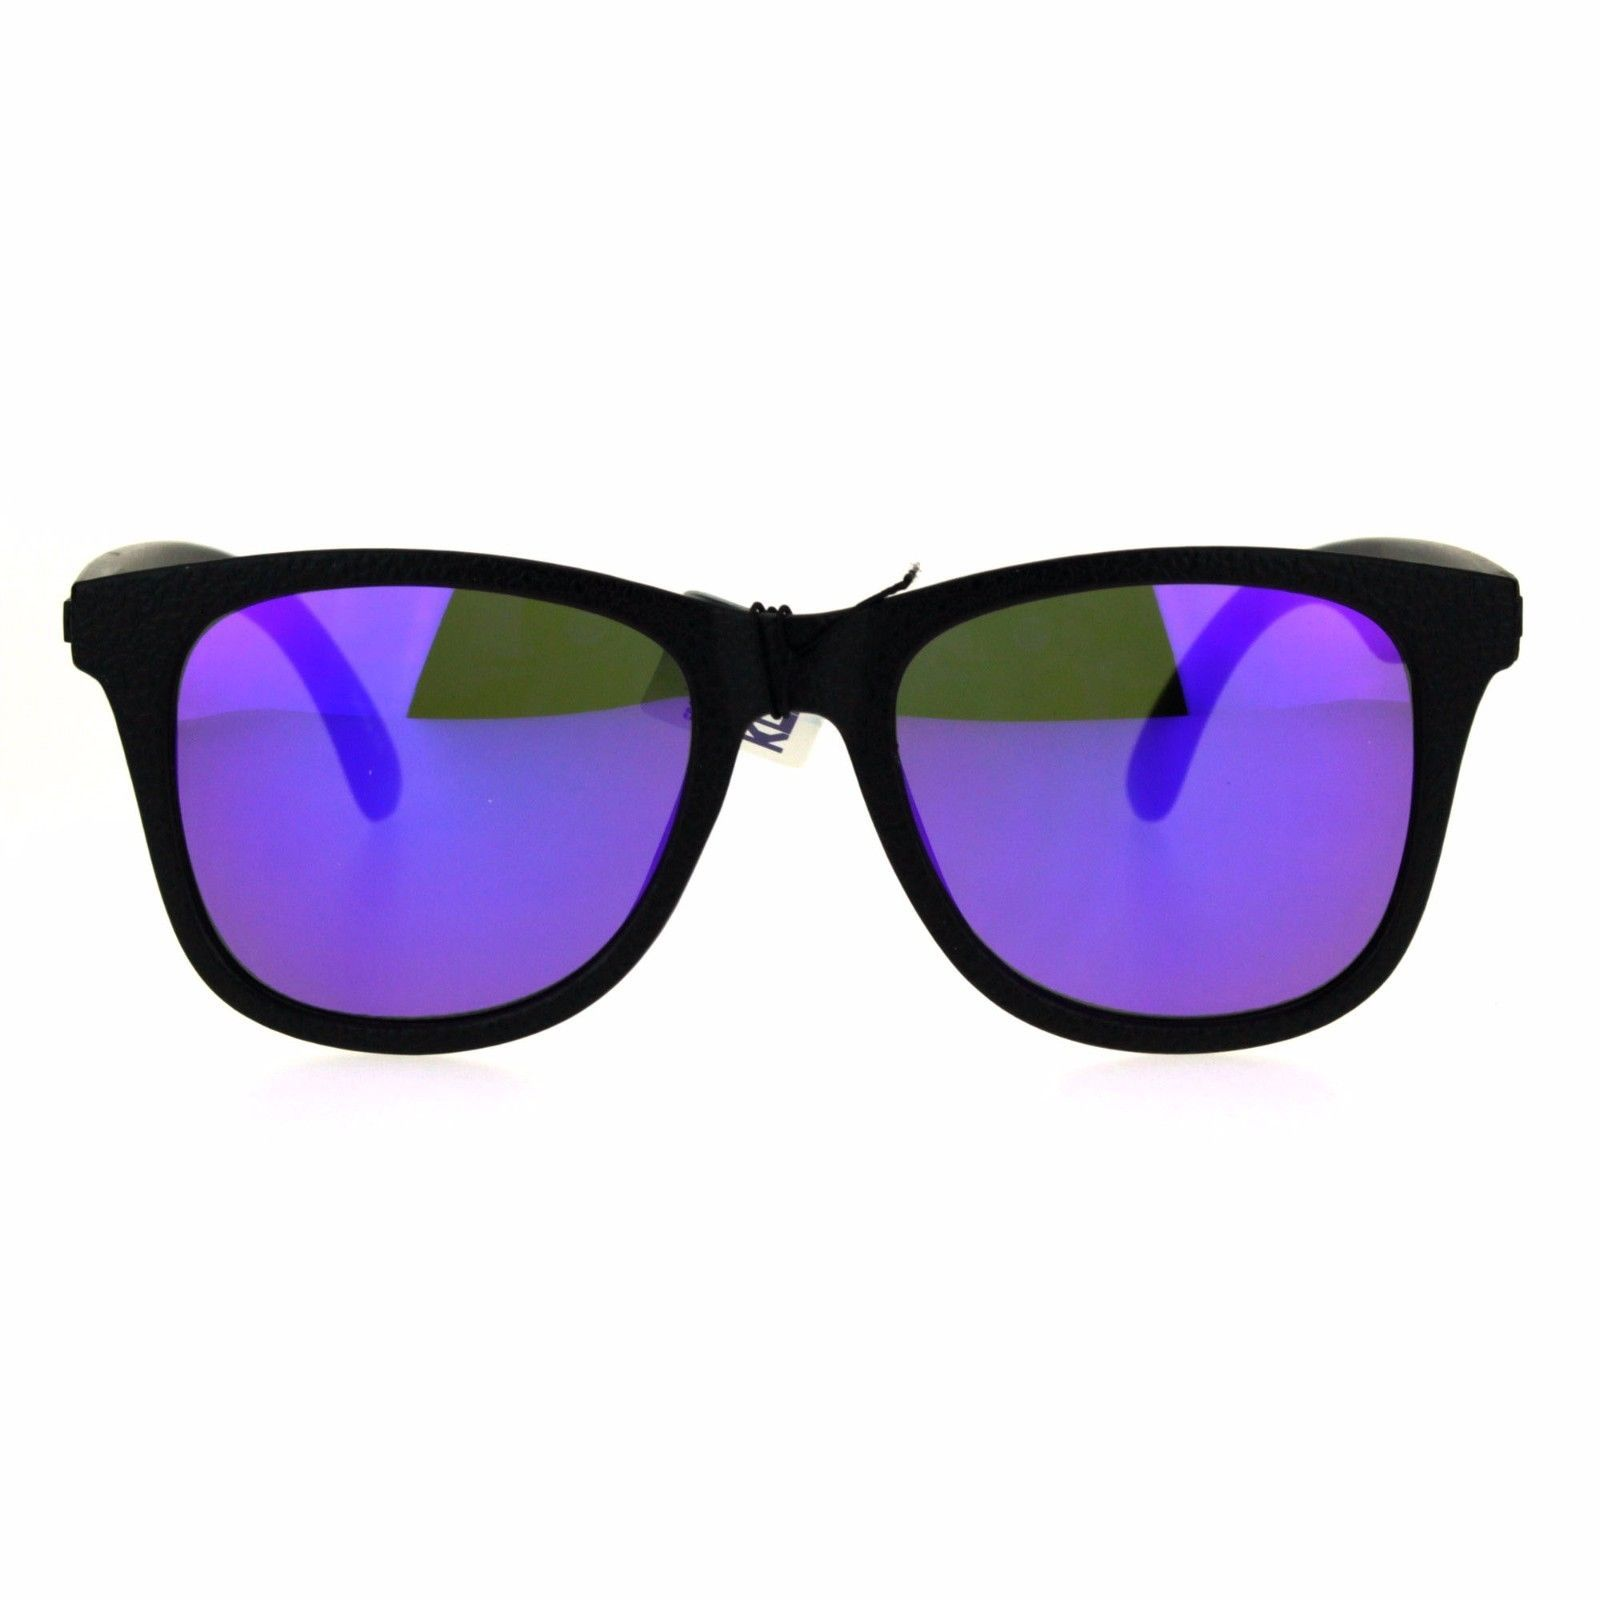 63b74d2c9 KUSH Sunglasses Unisex Classic Square Textured Black Frame Mirror Lens UV  400